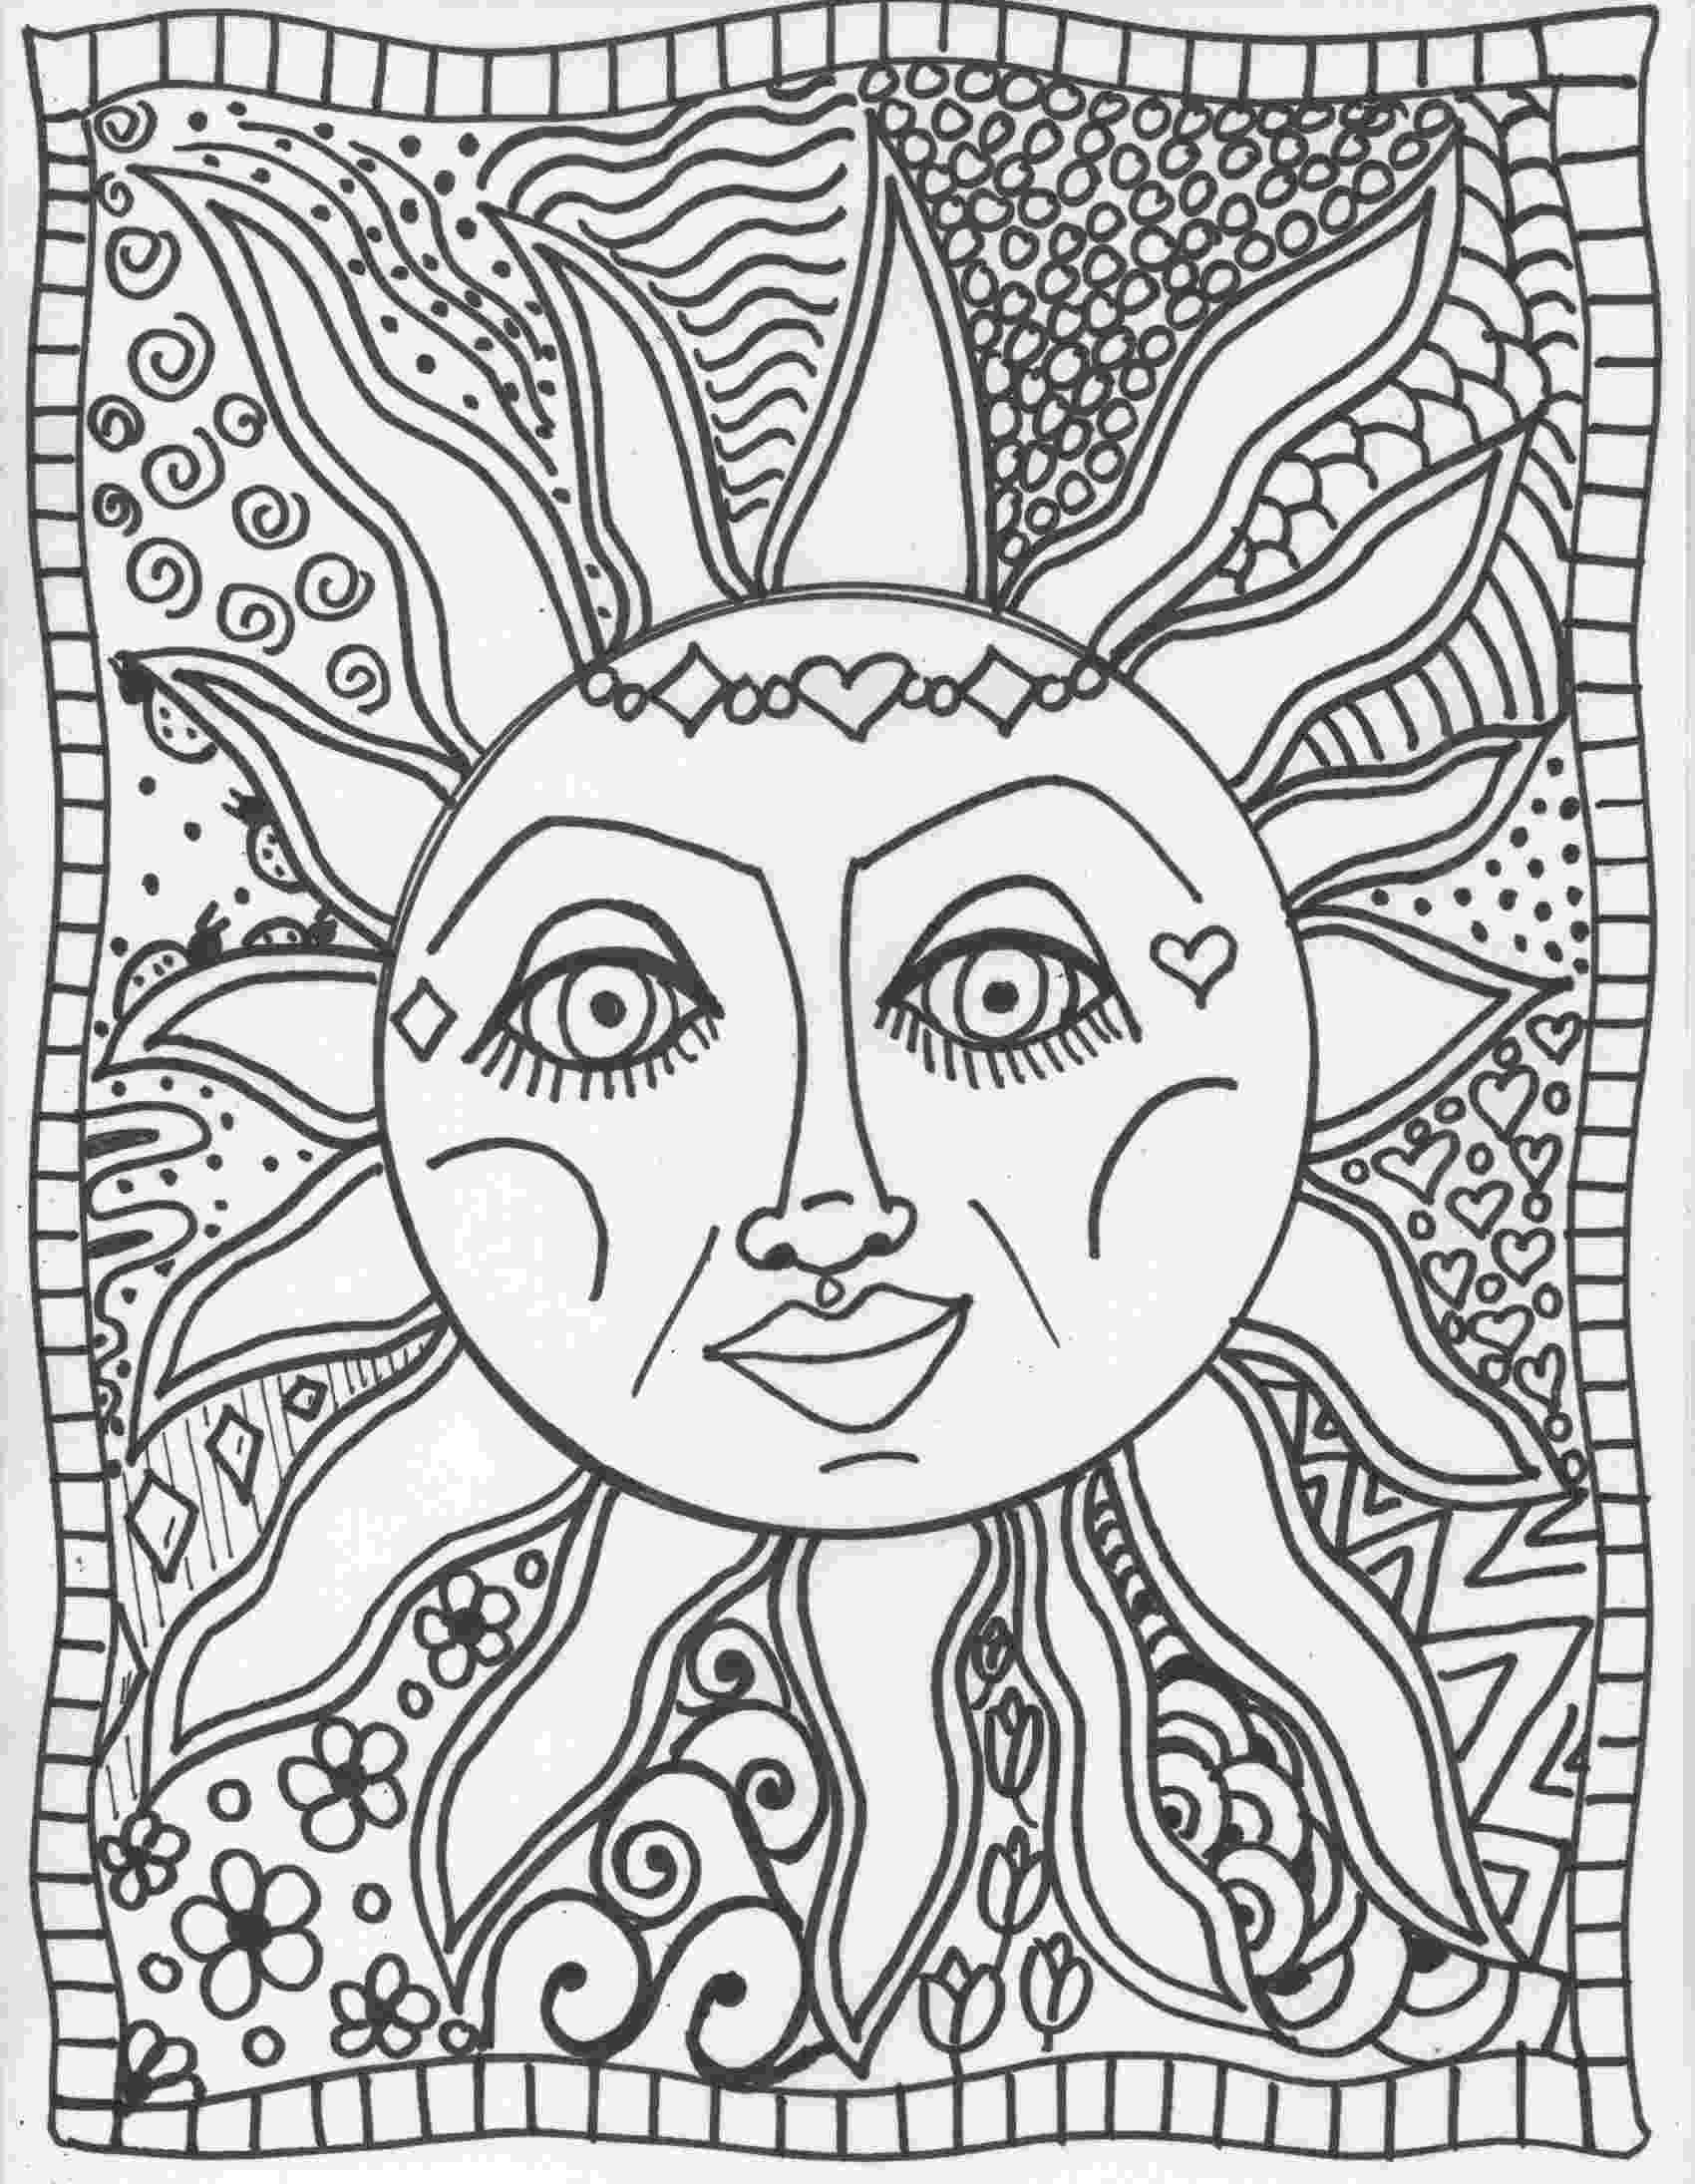 trippy coloring pages printable psychedelic coloring pages to download and print for free pages trippy coloring printable